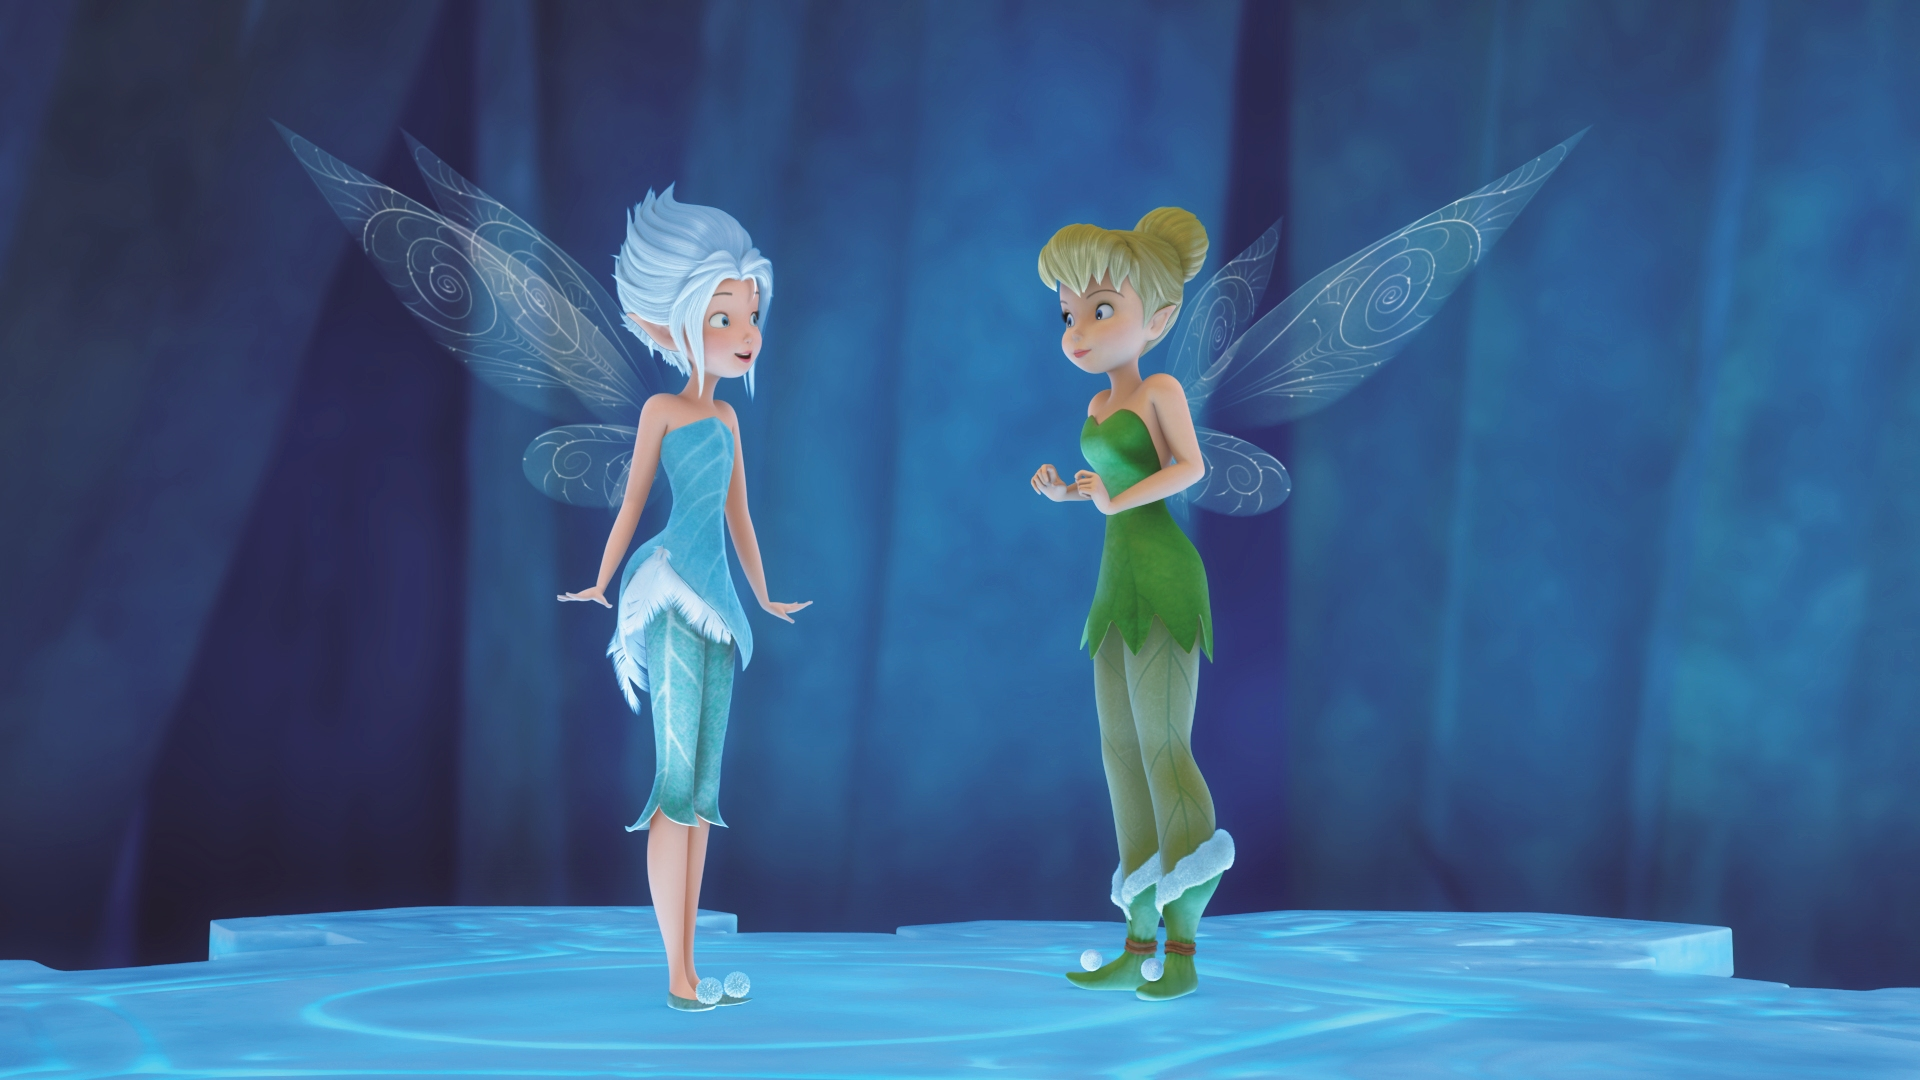 tinker bell and fairy - photo #29